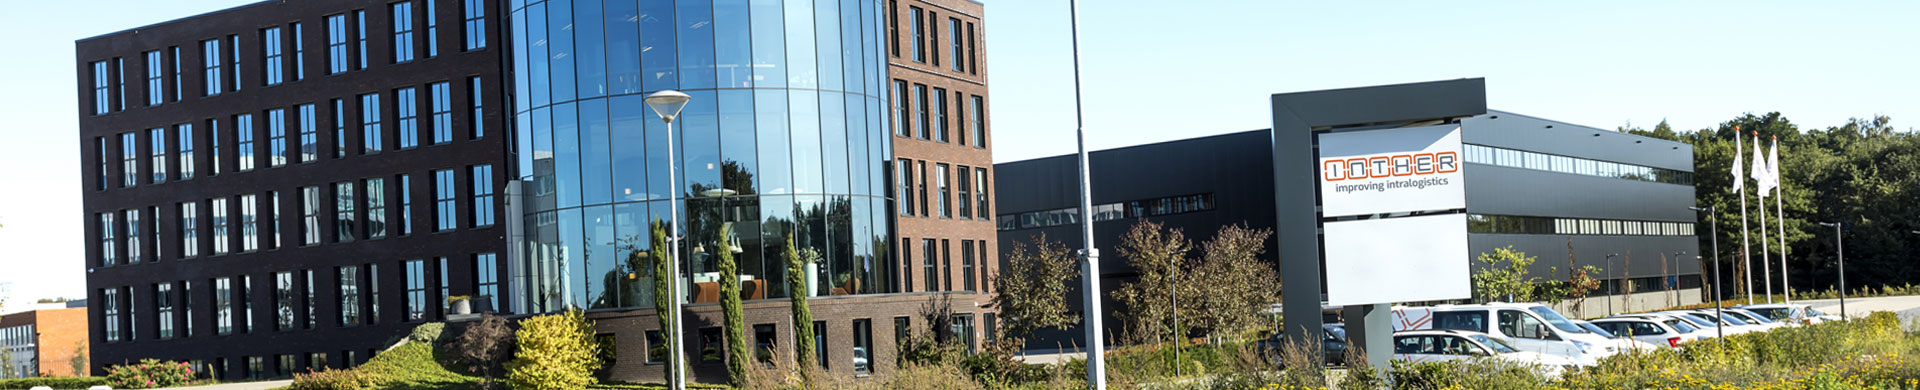 Building Inther Group Netherlands